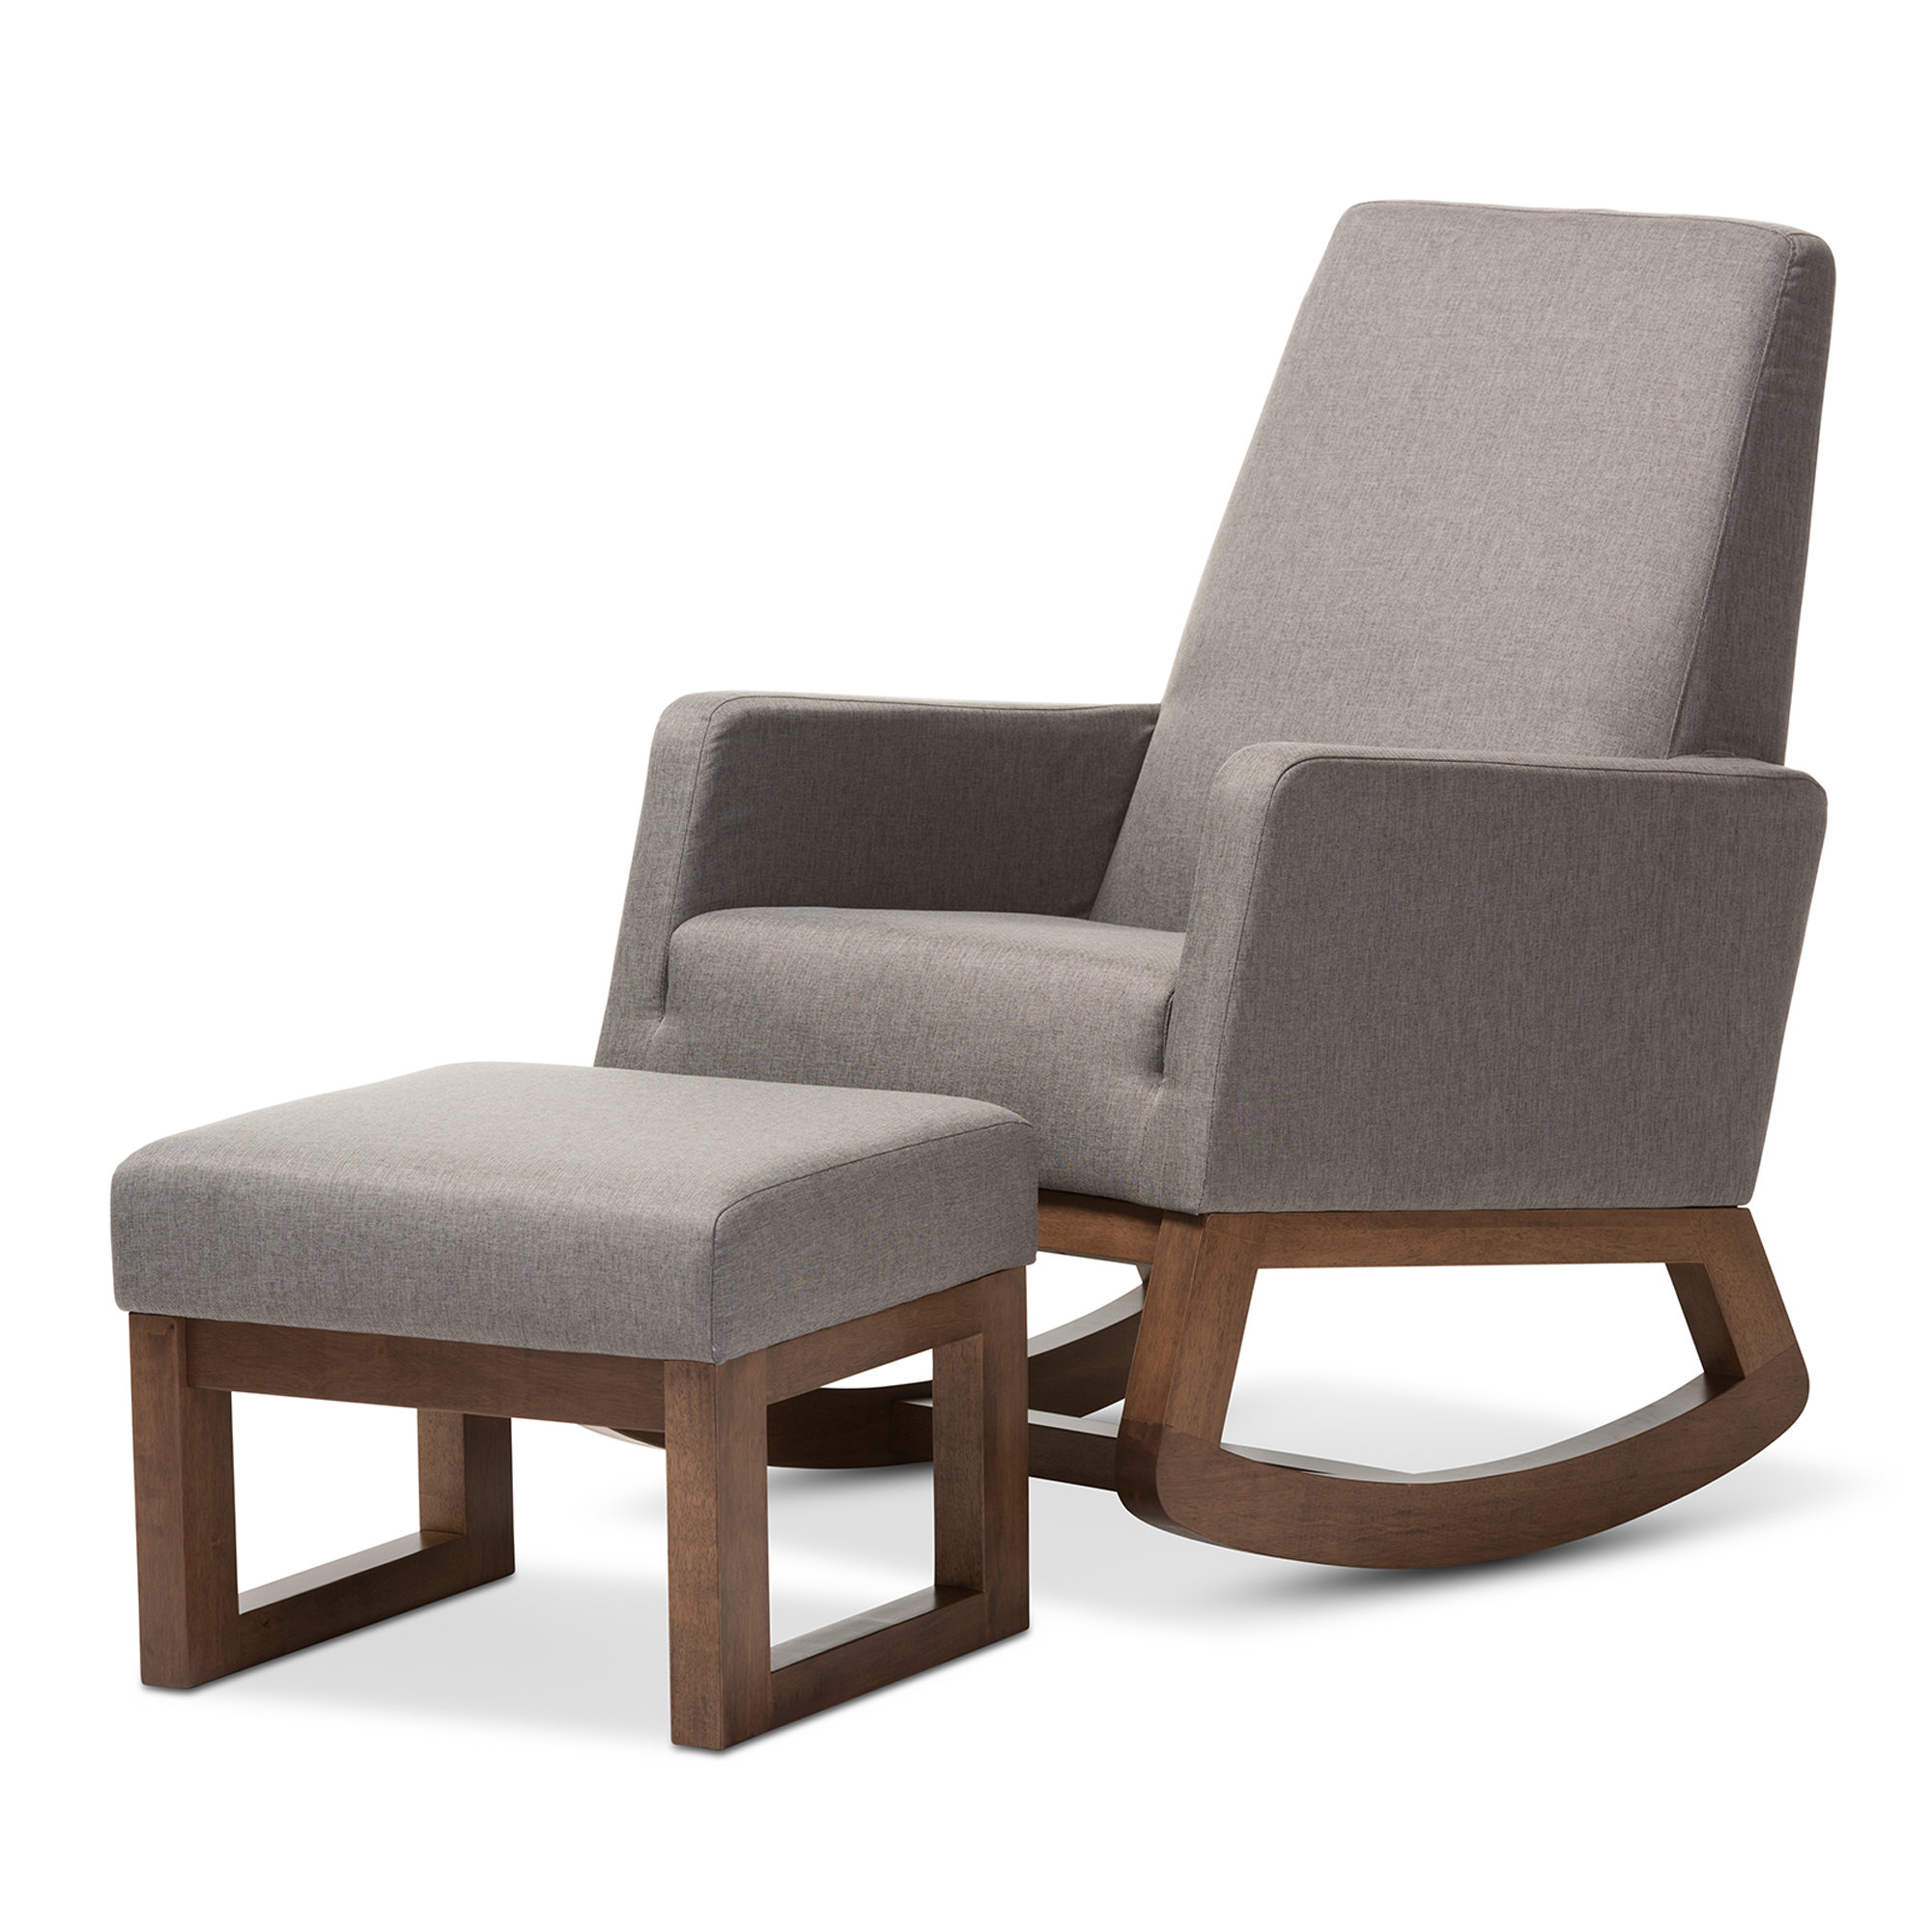 Inspiration about Modern & Contemporary Leather Rocking Chair | Allmodern Inside Dark Oak Wooden Padded Faux Leather Rocking Chairs (#15 of 20)